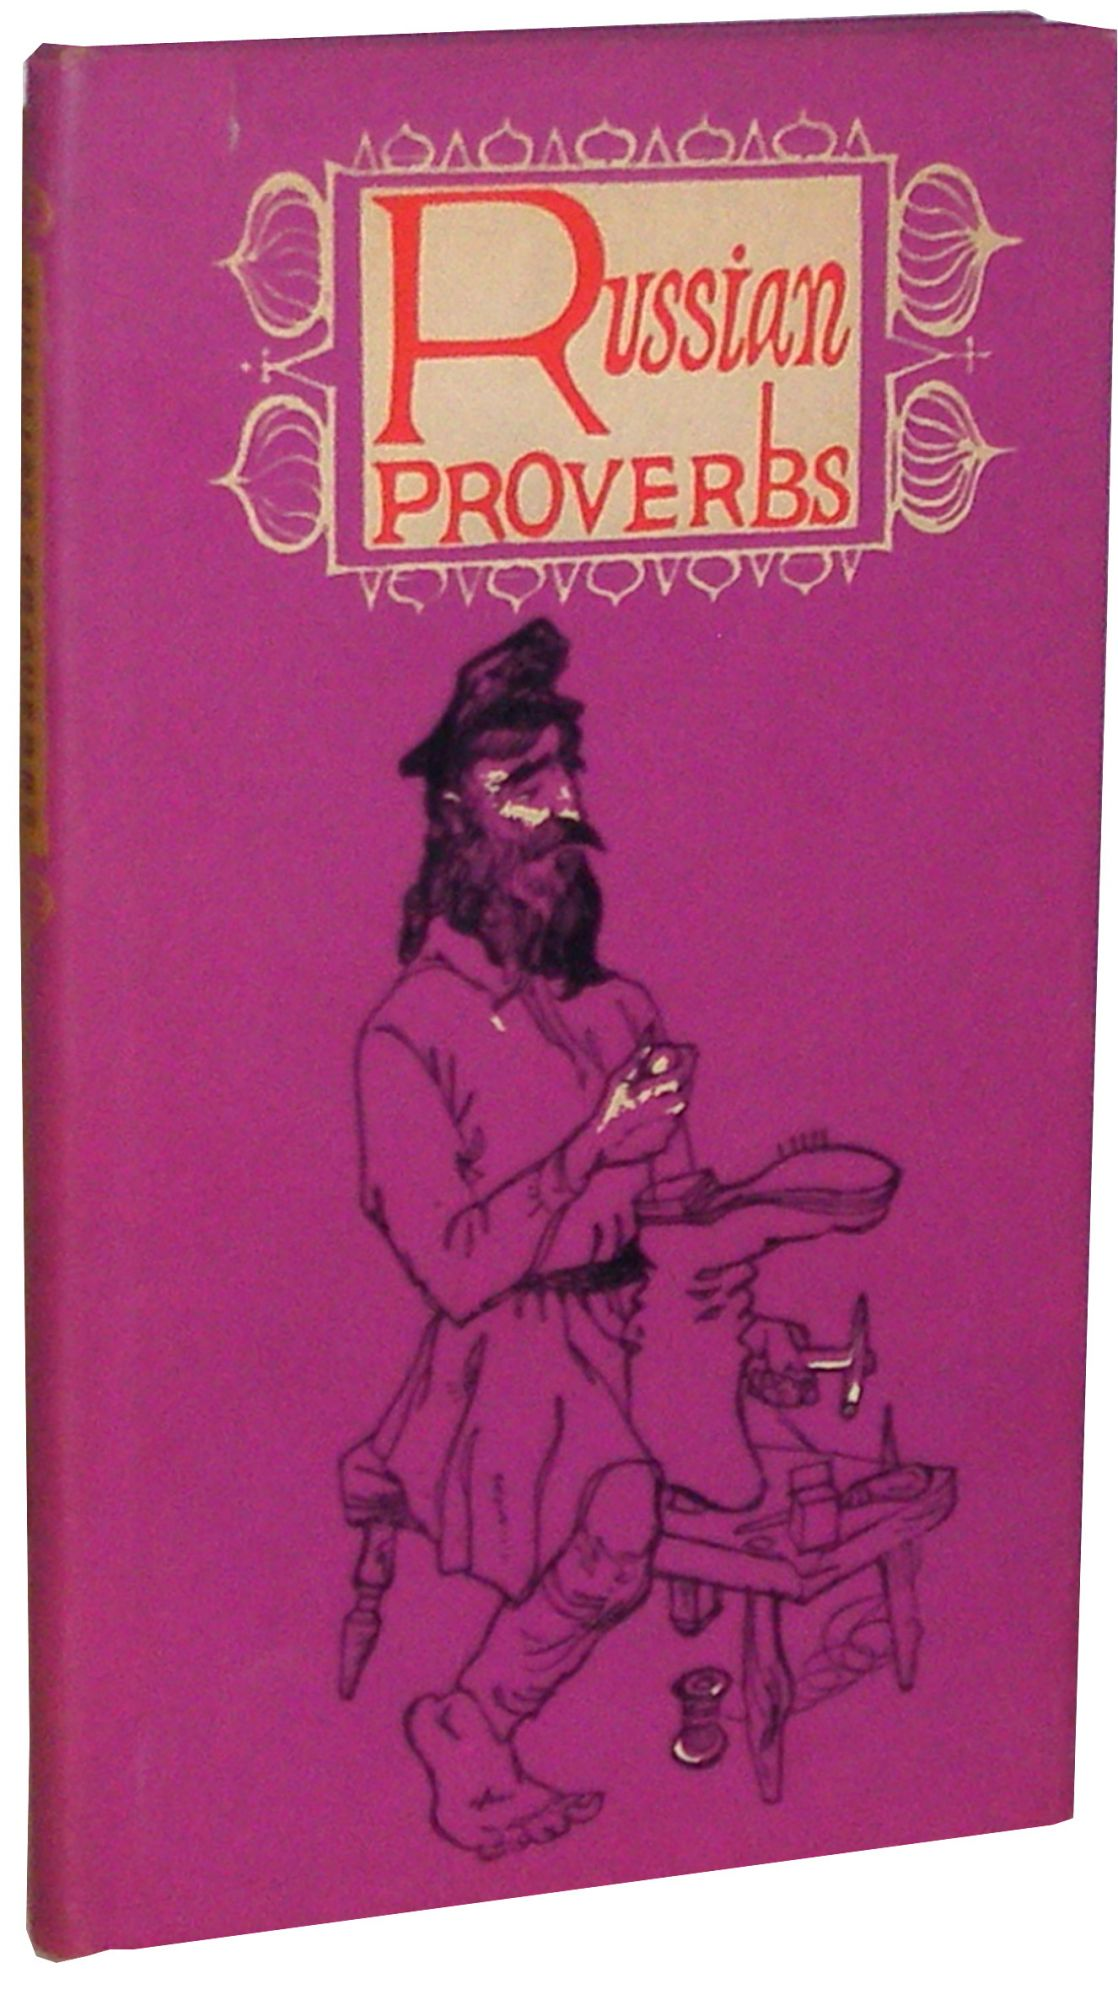 Russian Proverbs, Newly Translated - Peter Pauper Press